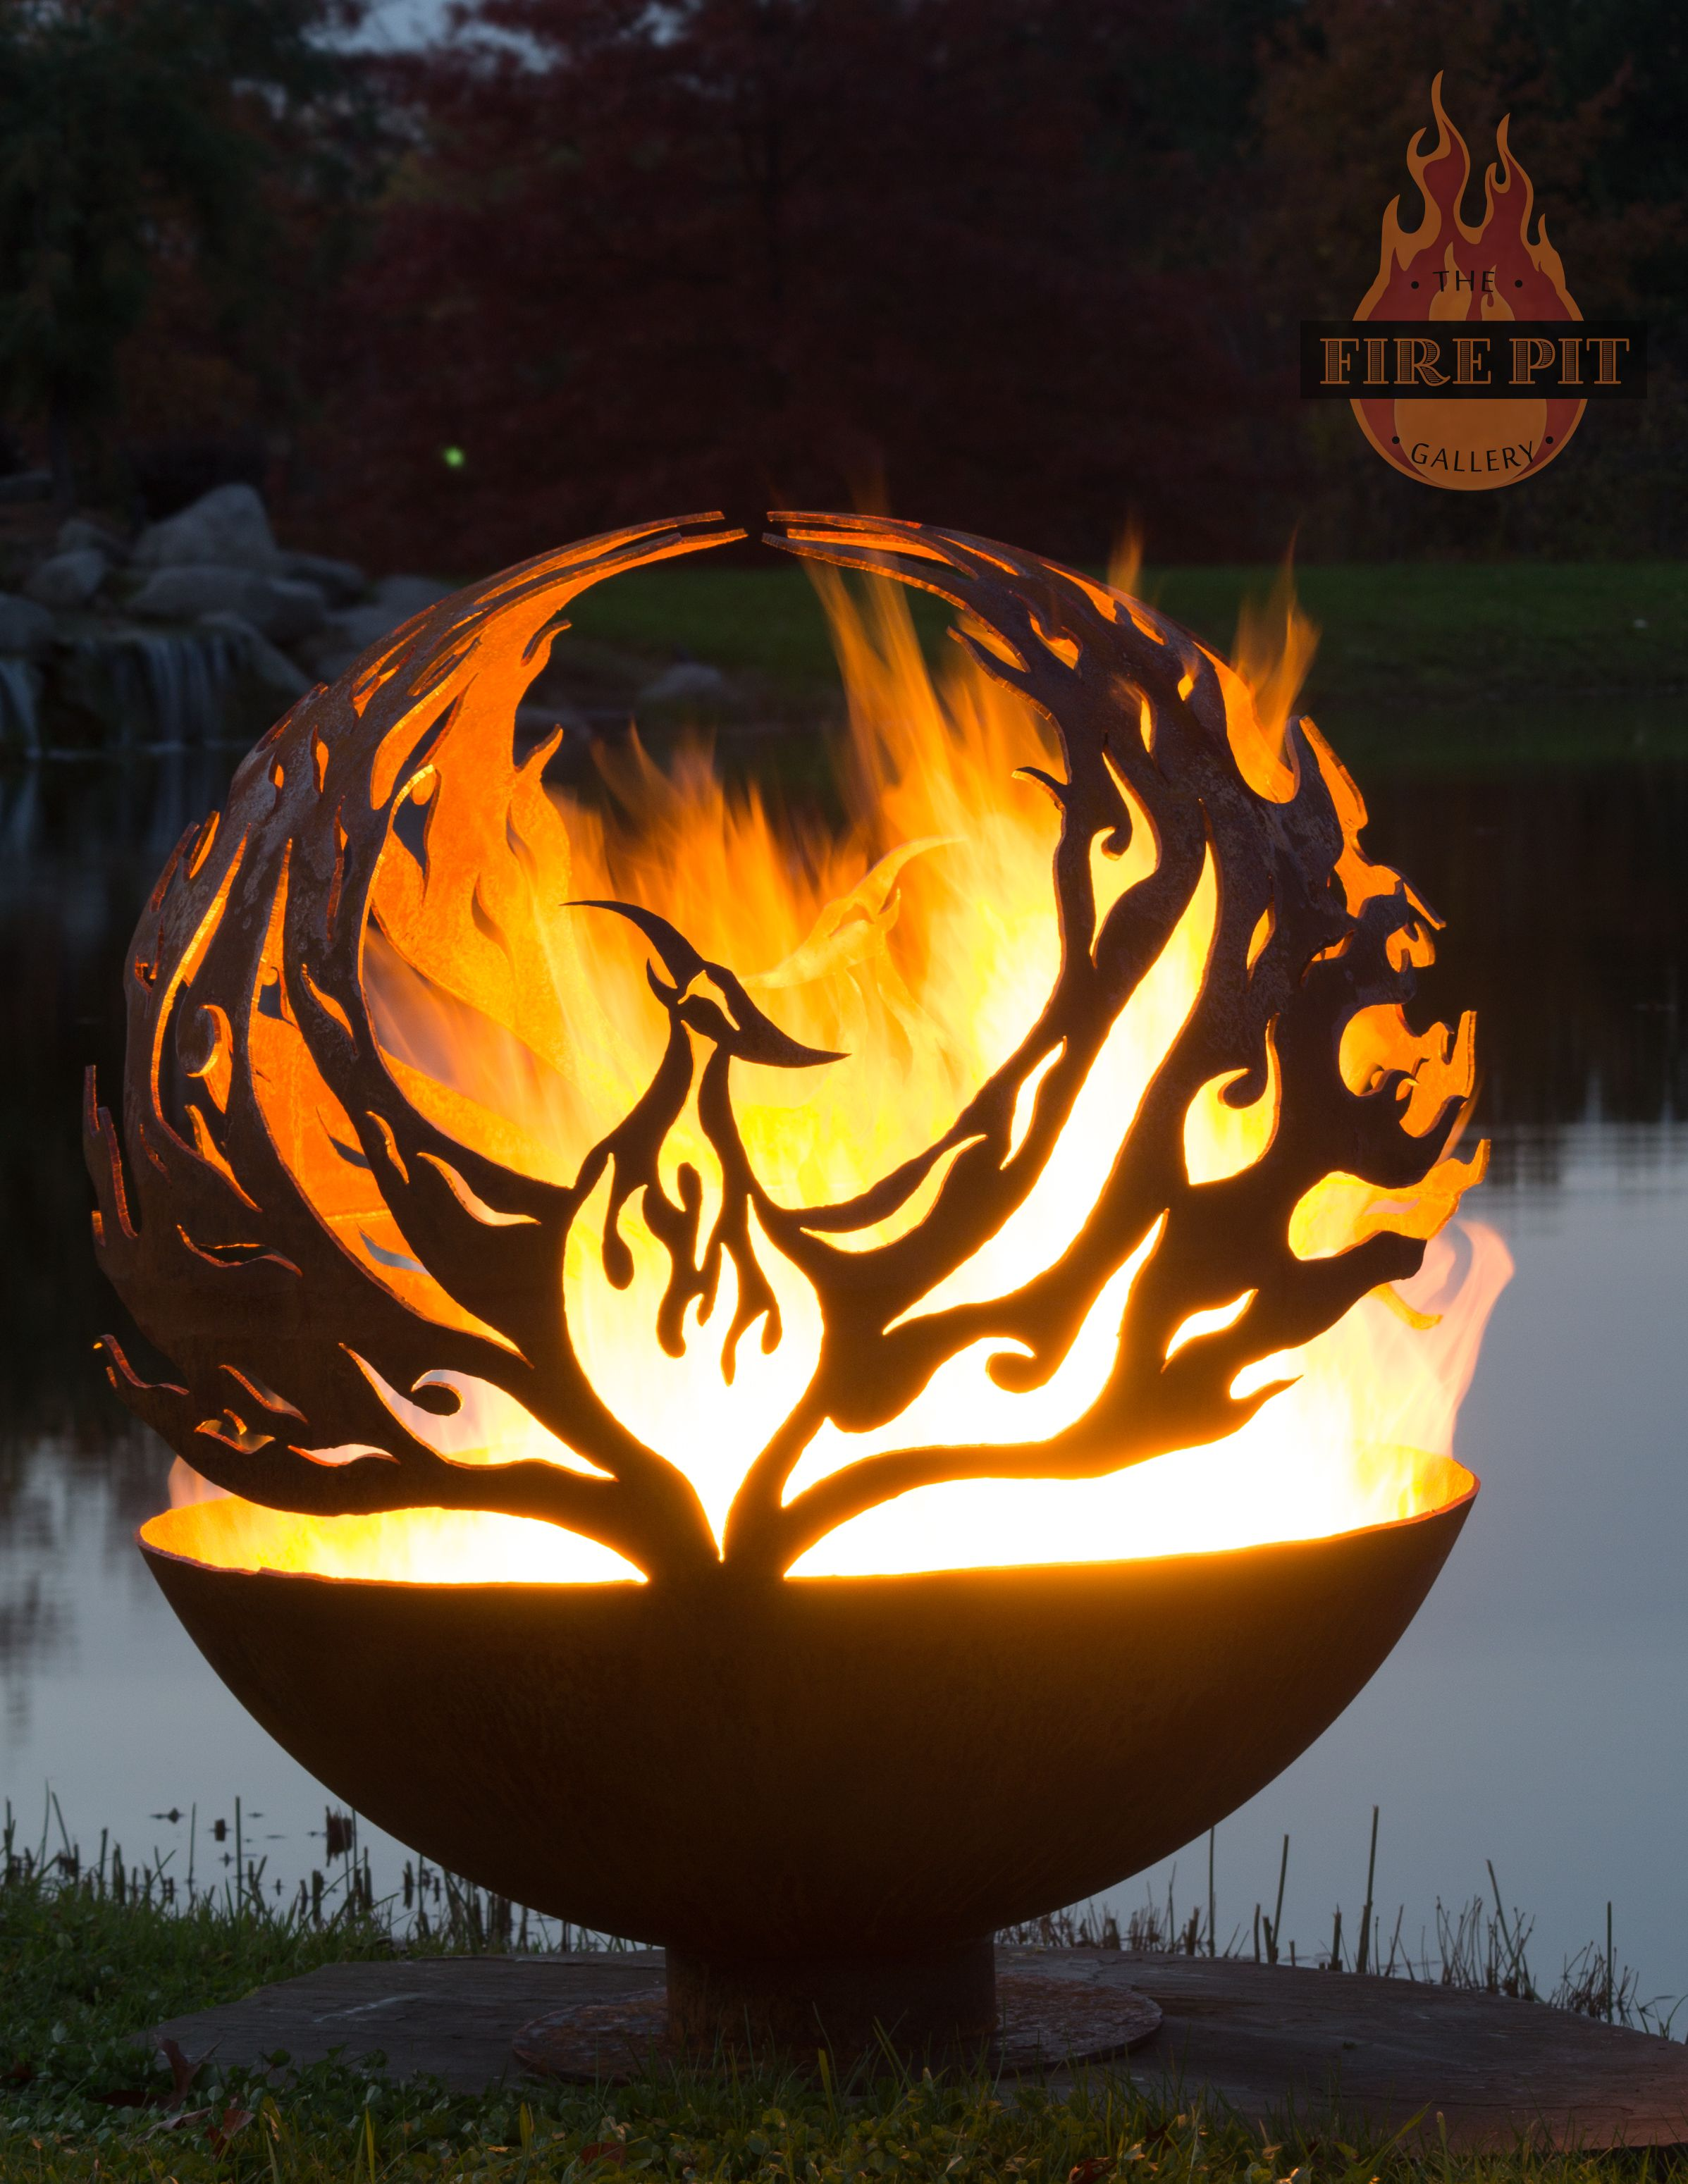 phoenix rising 37 fire pit sphere by artist melissa crisp of the